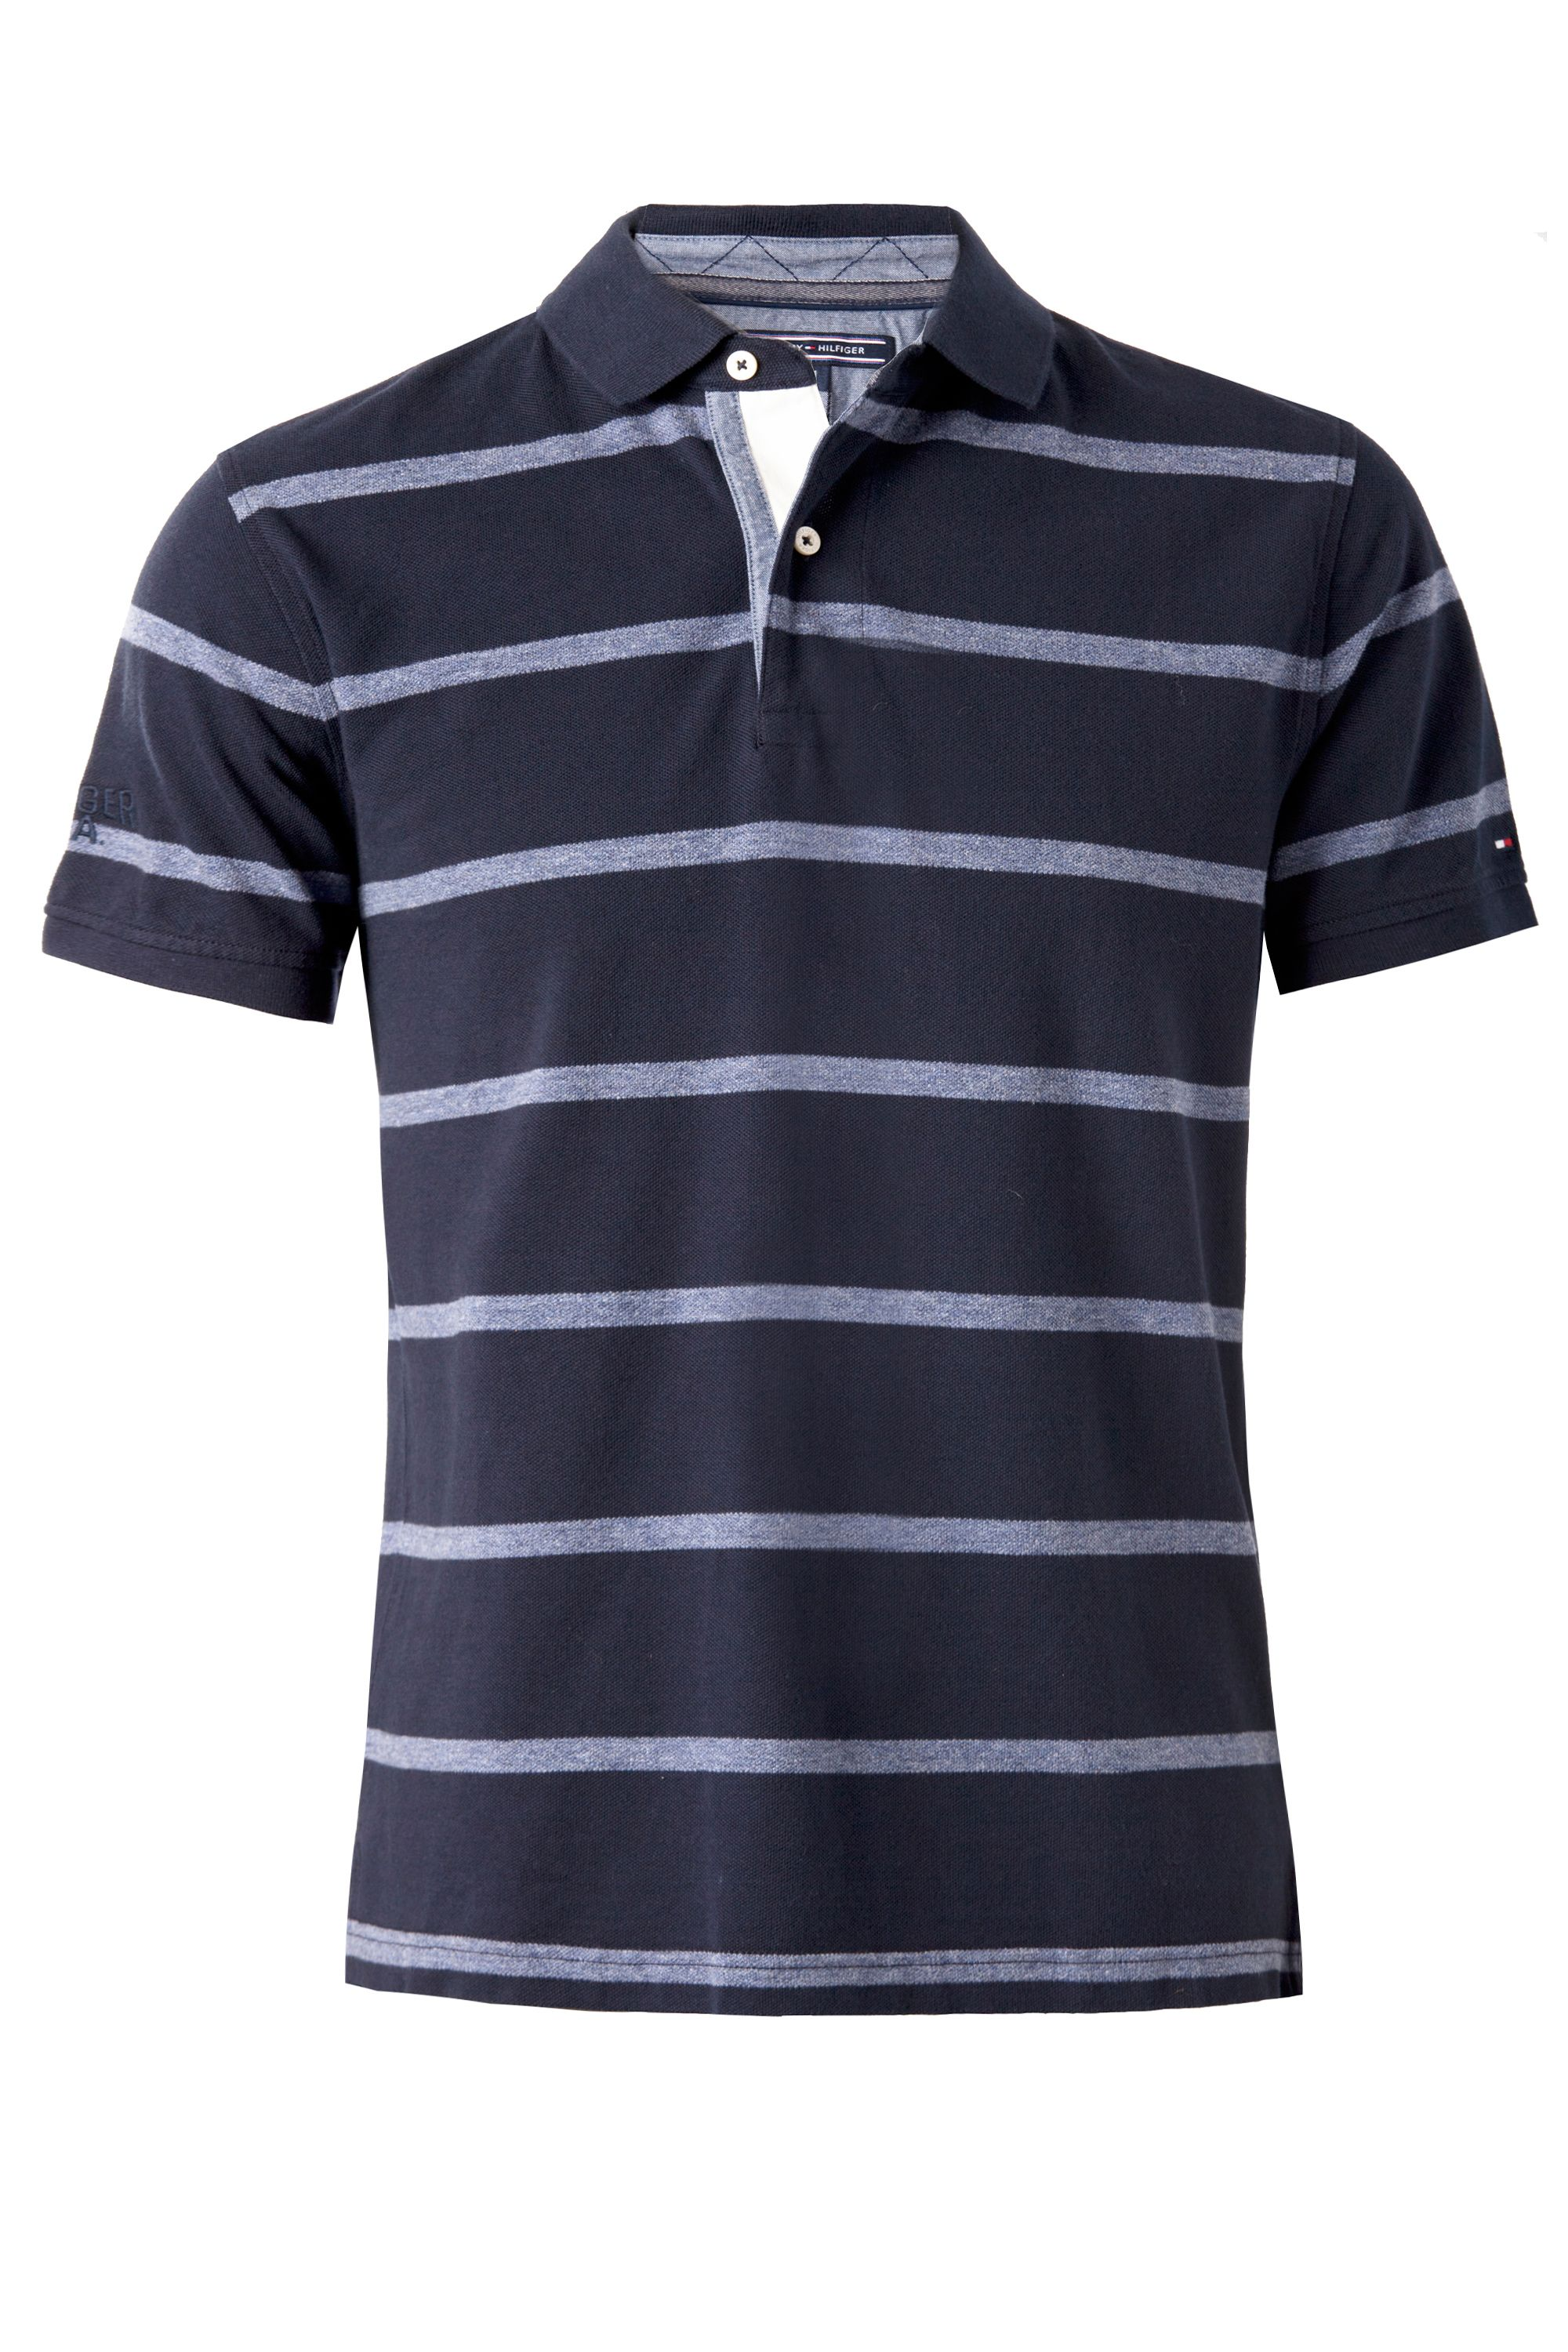 Senna short sleeve polo